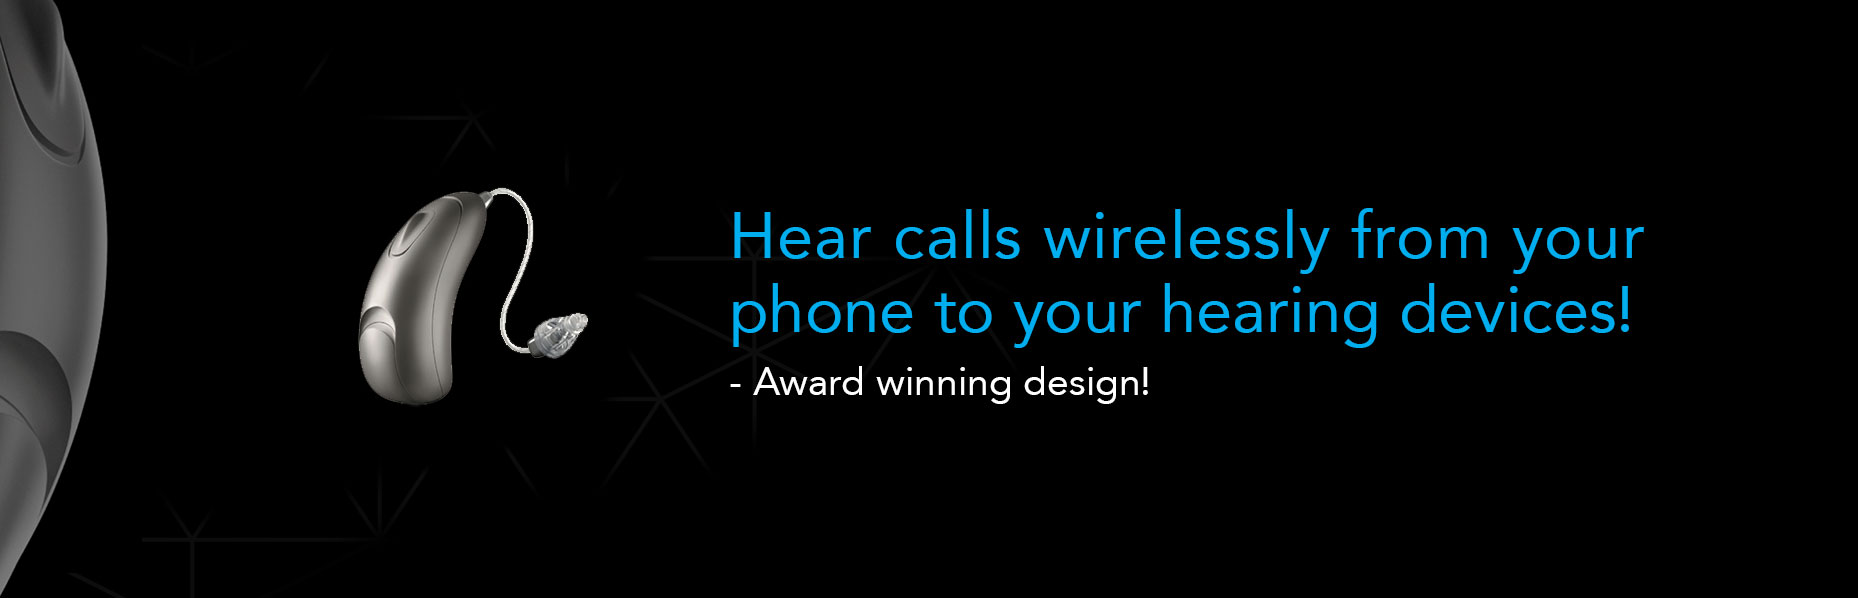 A single Moxi All hearing aid from Unitron sits on the left side of a black surface with a text that runs from the middle to the right side of the banner which says Hear calls wirelessly from your phone to your hearing devices!